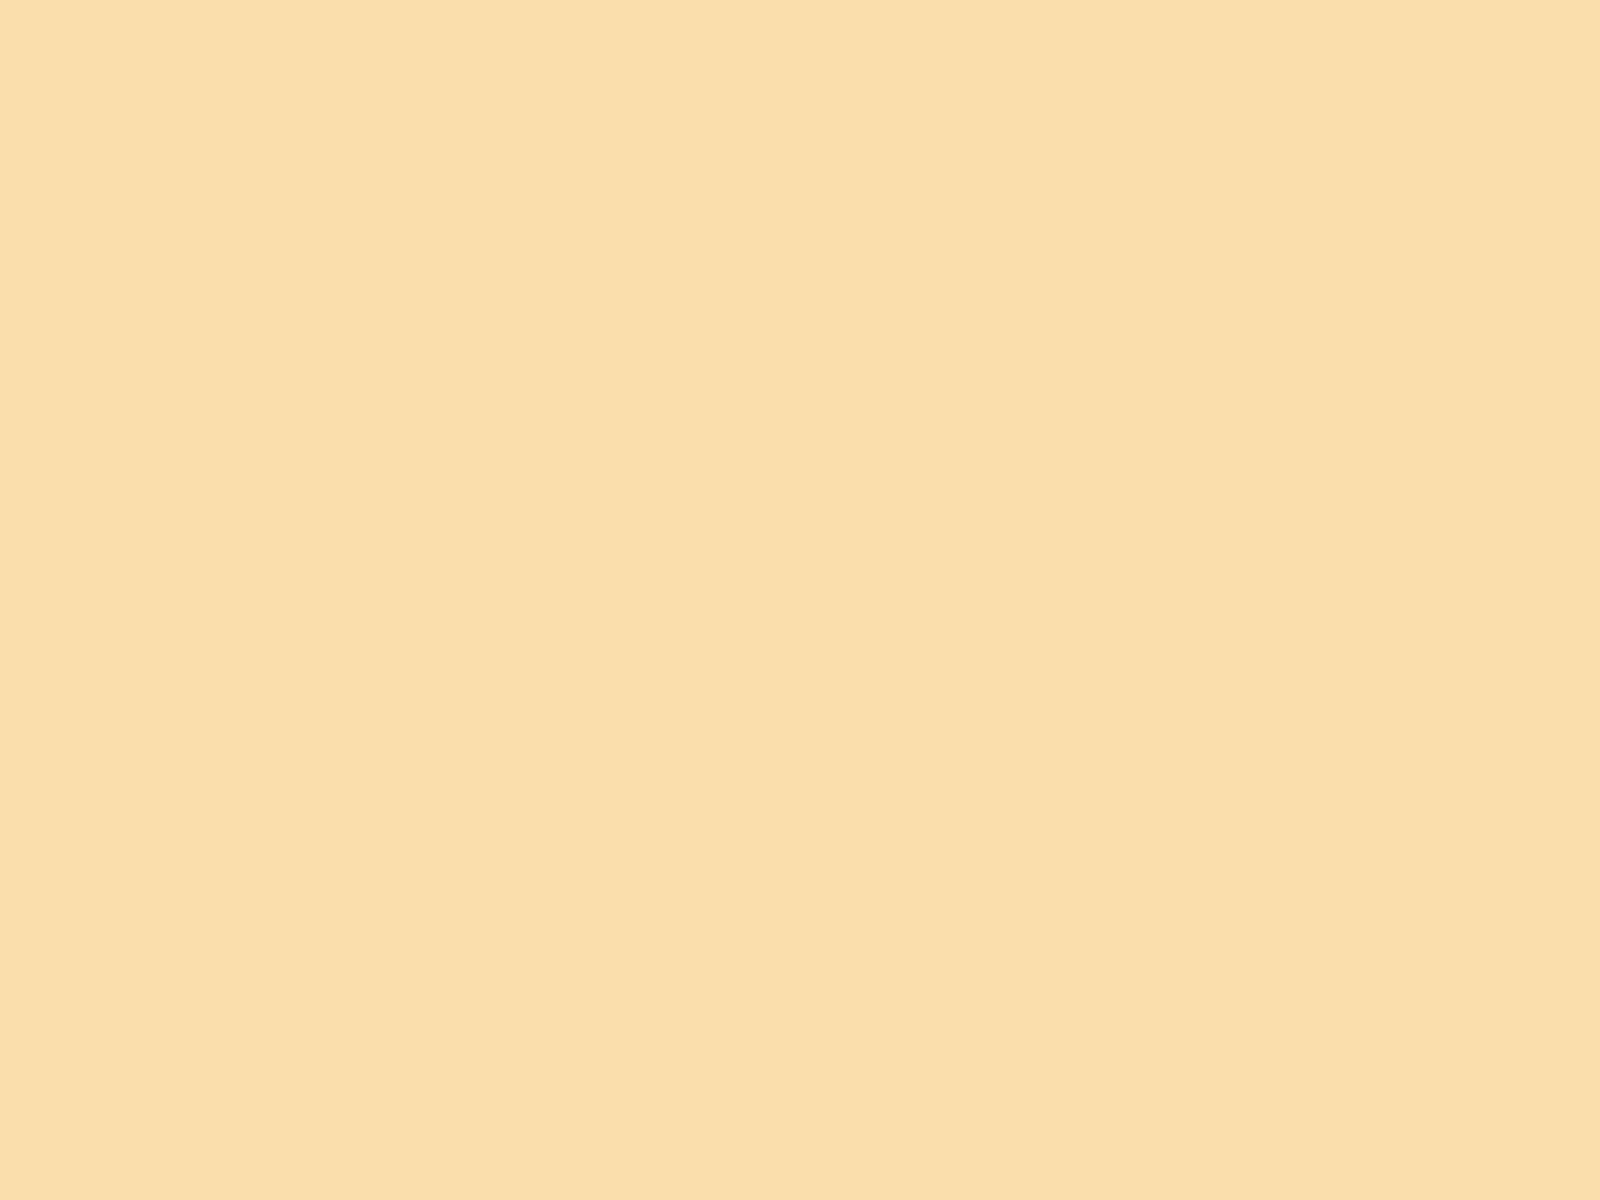 1600x1200 Peach-yellow Solid Color Background